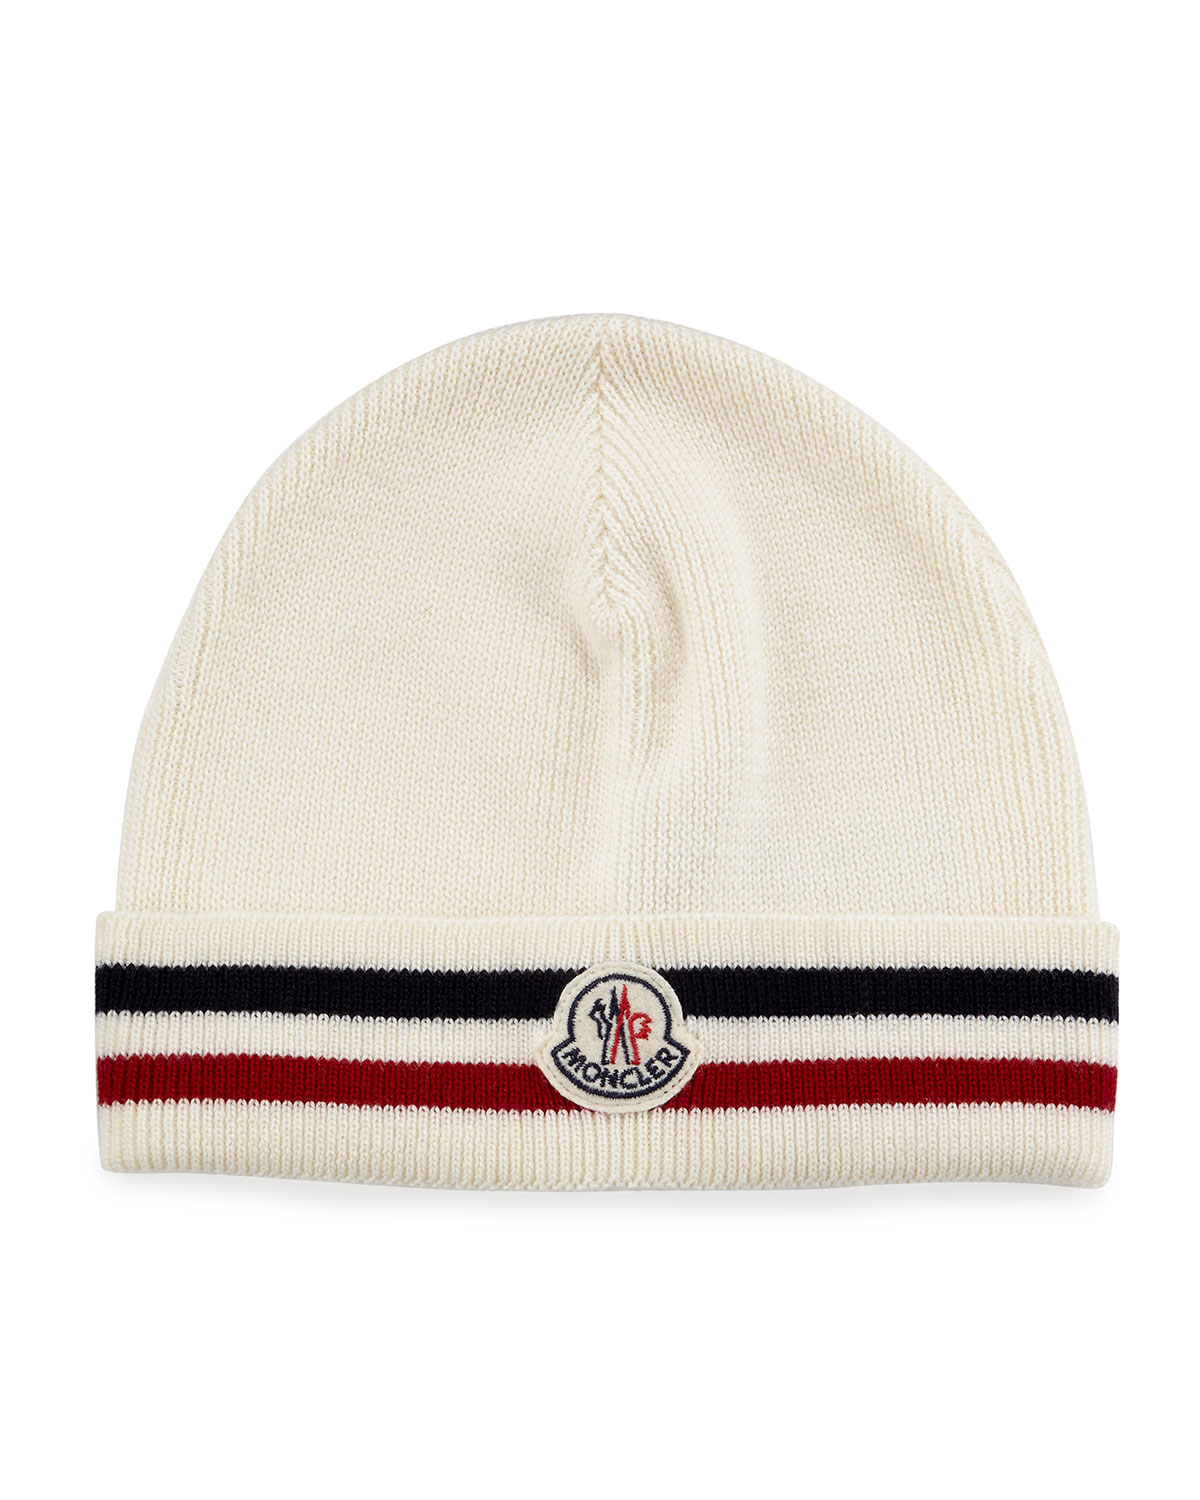 new style 95510 0f0f6 Moncler Striped Logo Cashmere Beanie Hat in White for Men - Lyst